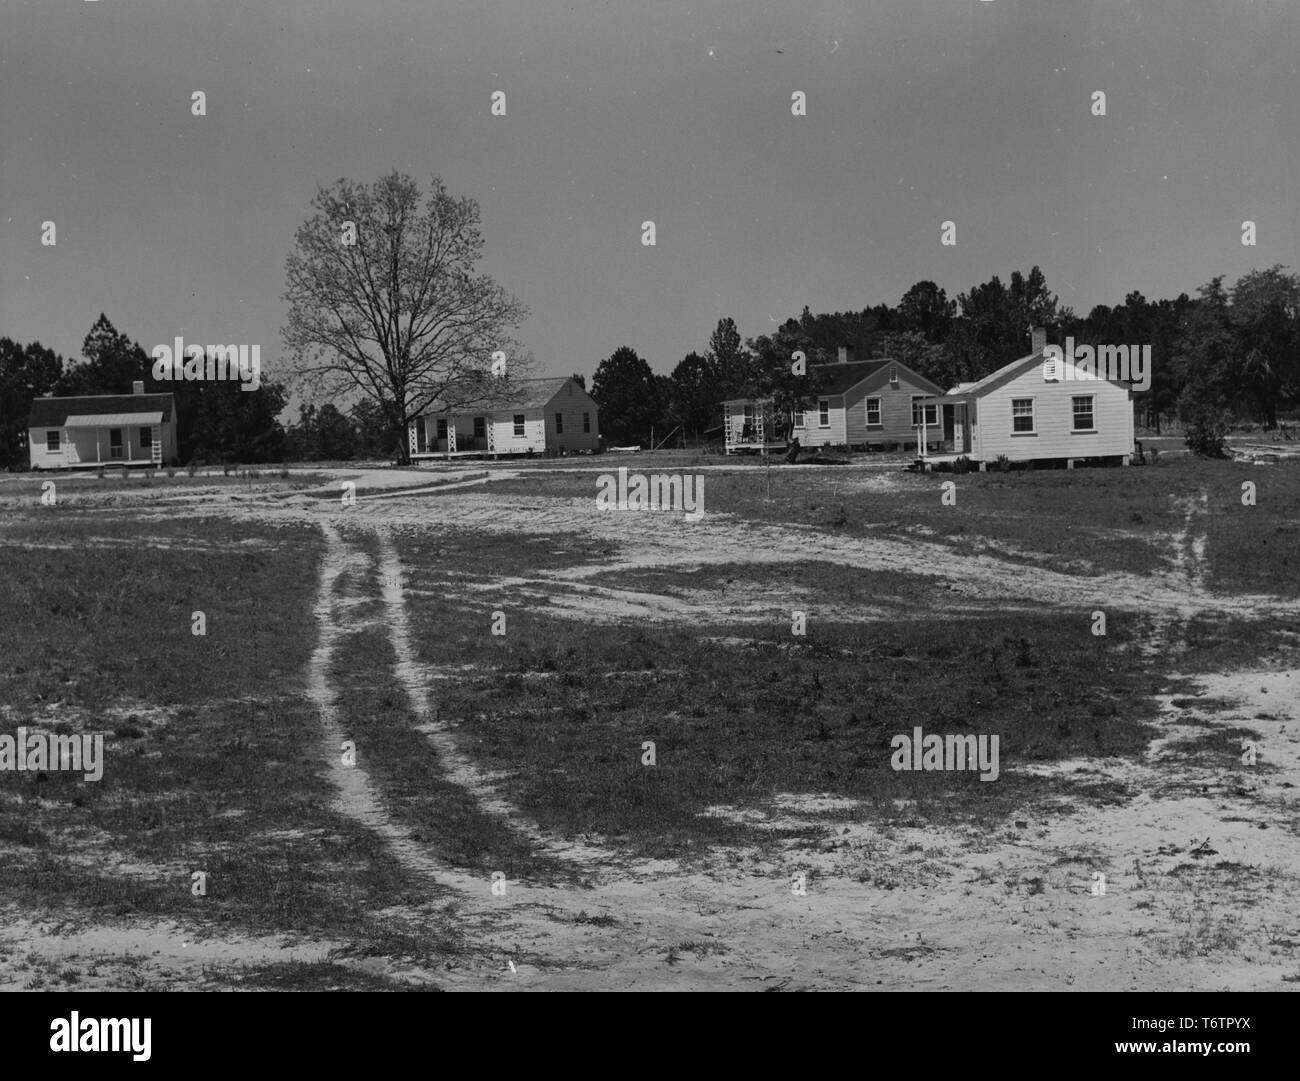 Photograph of a teacher's and nurse's houses in Gee's Bend, Alabama, November, 1939. From the New York Public Library. () - Stock Image